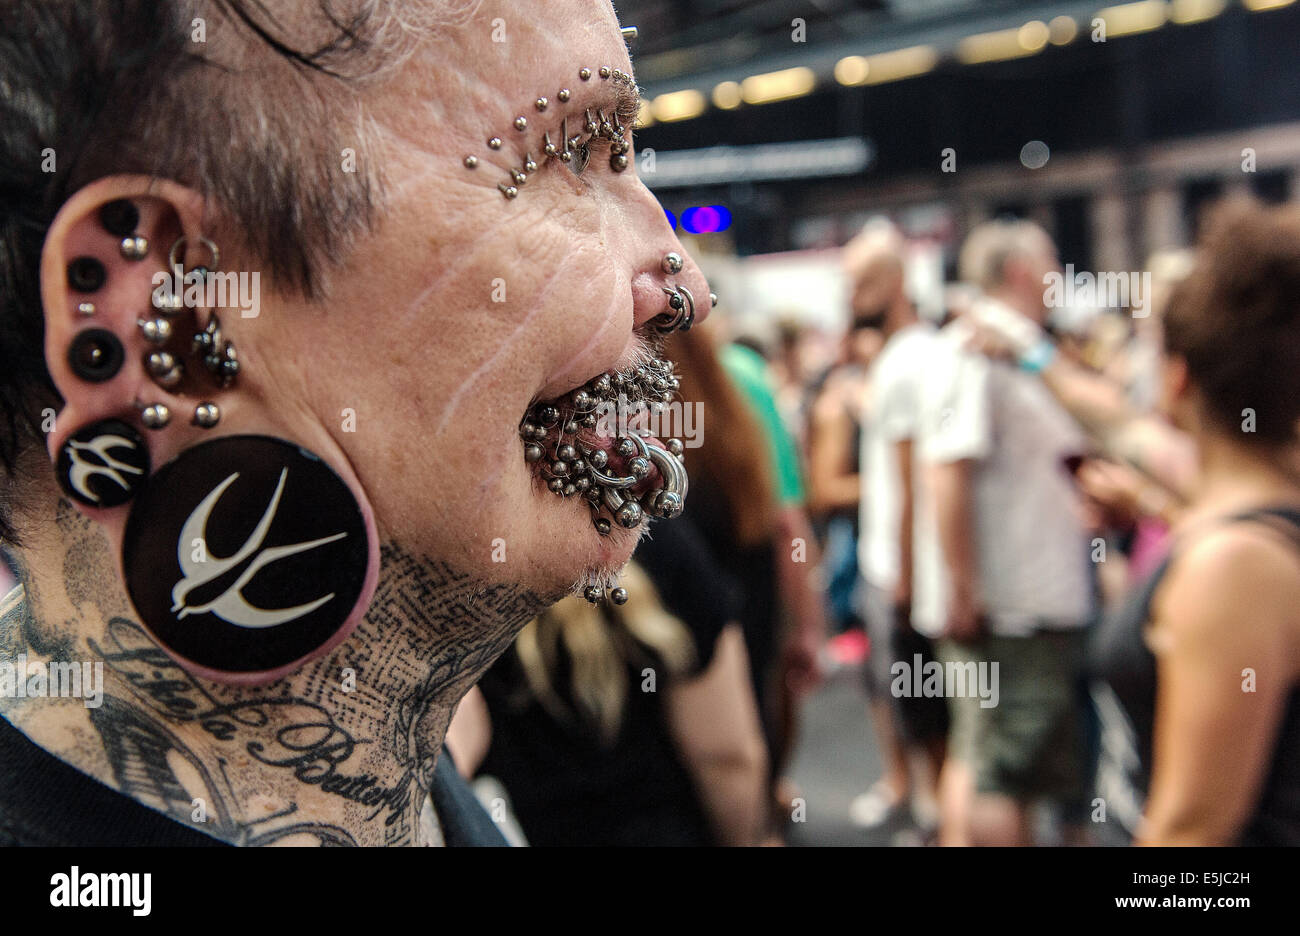 Berlin, Germany. 2nd Aug, 2014. Rolf Buchholz from Dortmund at the 24th Tattoo Convention at Arena in Berlin, Germany, - Stock Image